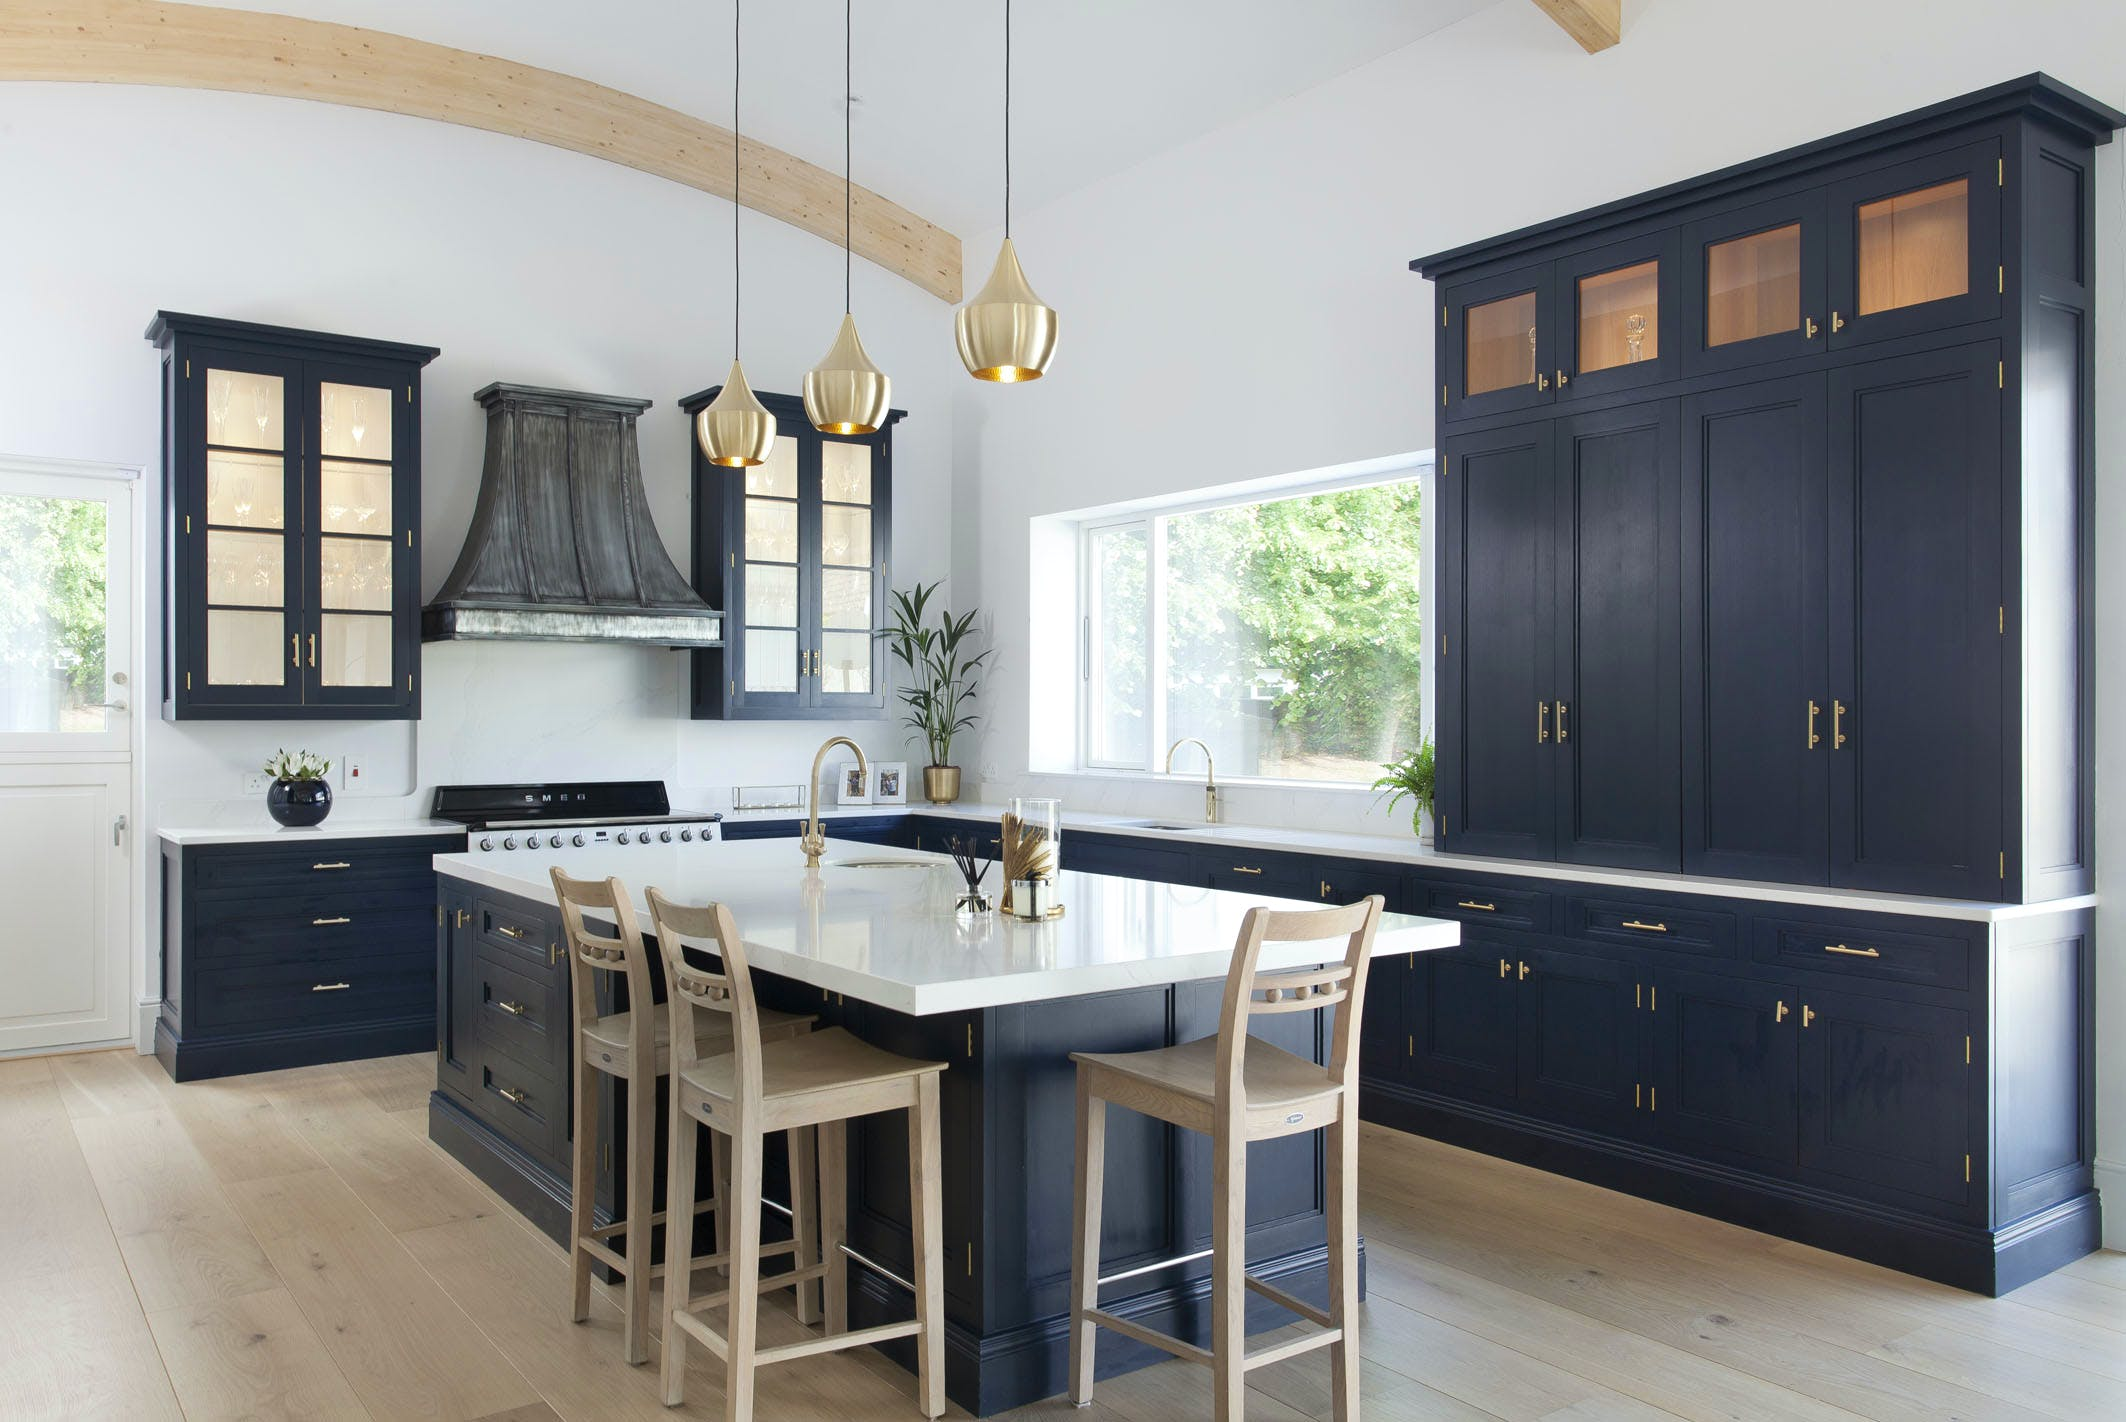 Image of Shalford Interiors Silestone Calacatta Gold 1 in The Top 7 Kitchen Makeover Trends - Cosentino